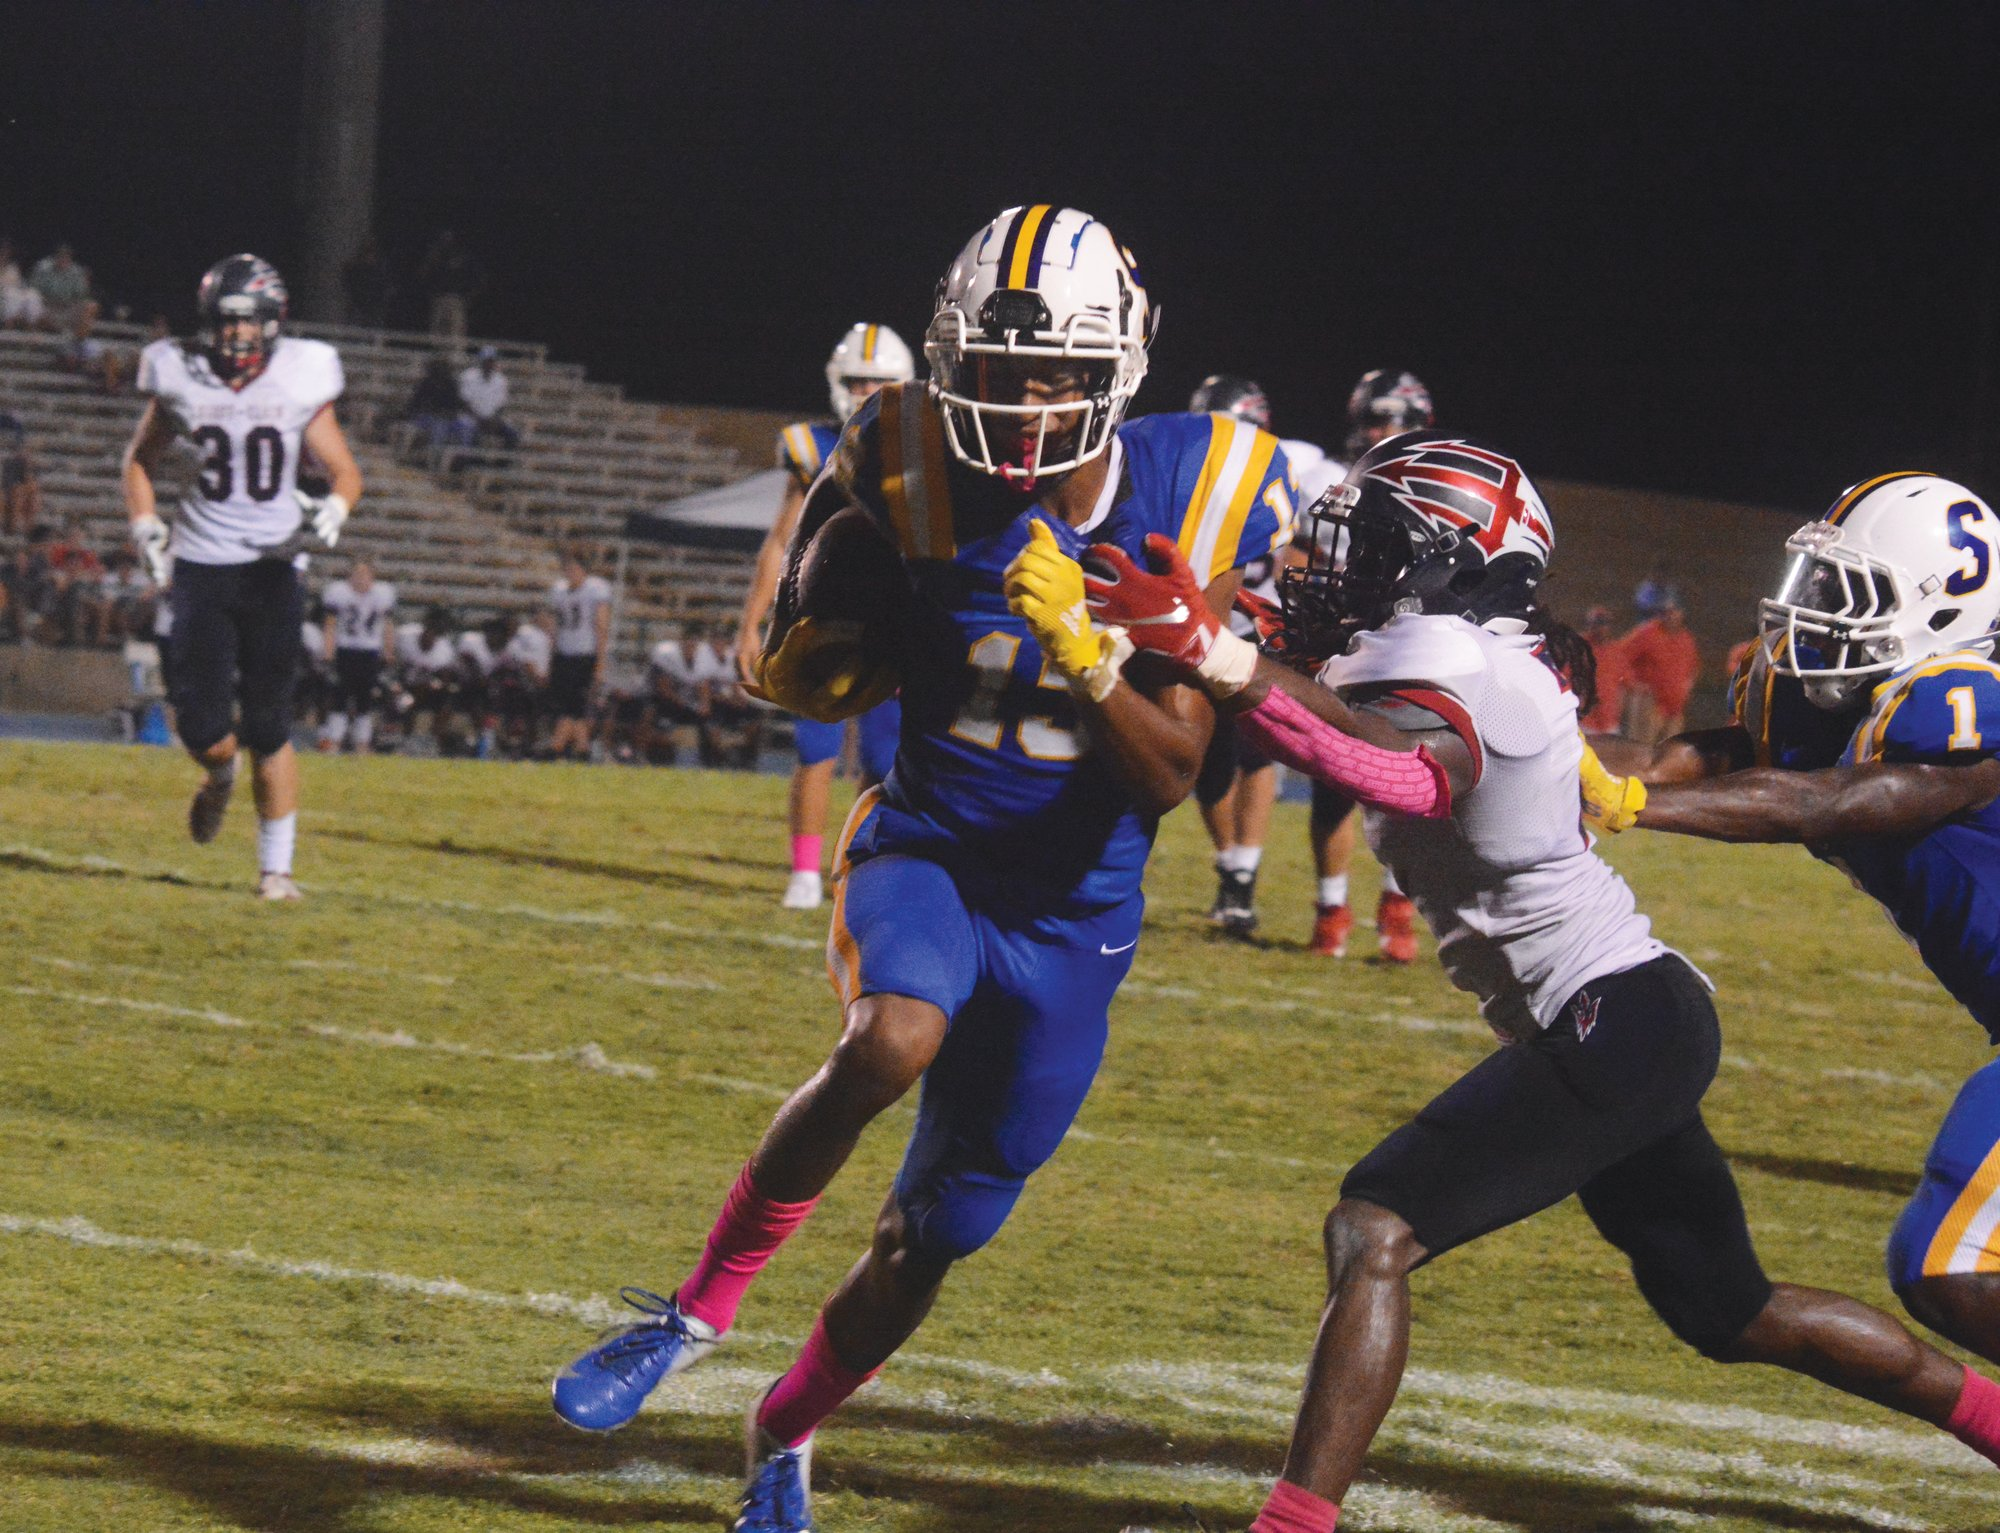 Sumter wide receiver Tylee Craft (13) and the Gamecocks maintained their fifth-place ranking in 5A in the S.C. Prep Media Football Poll this week.